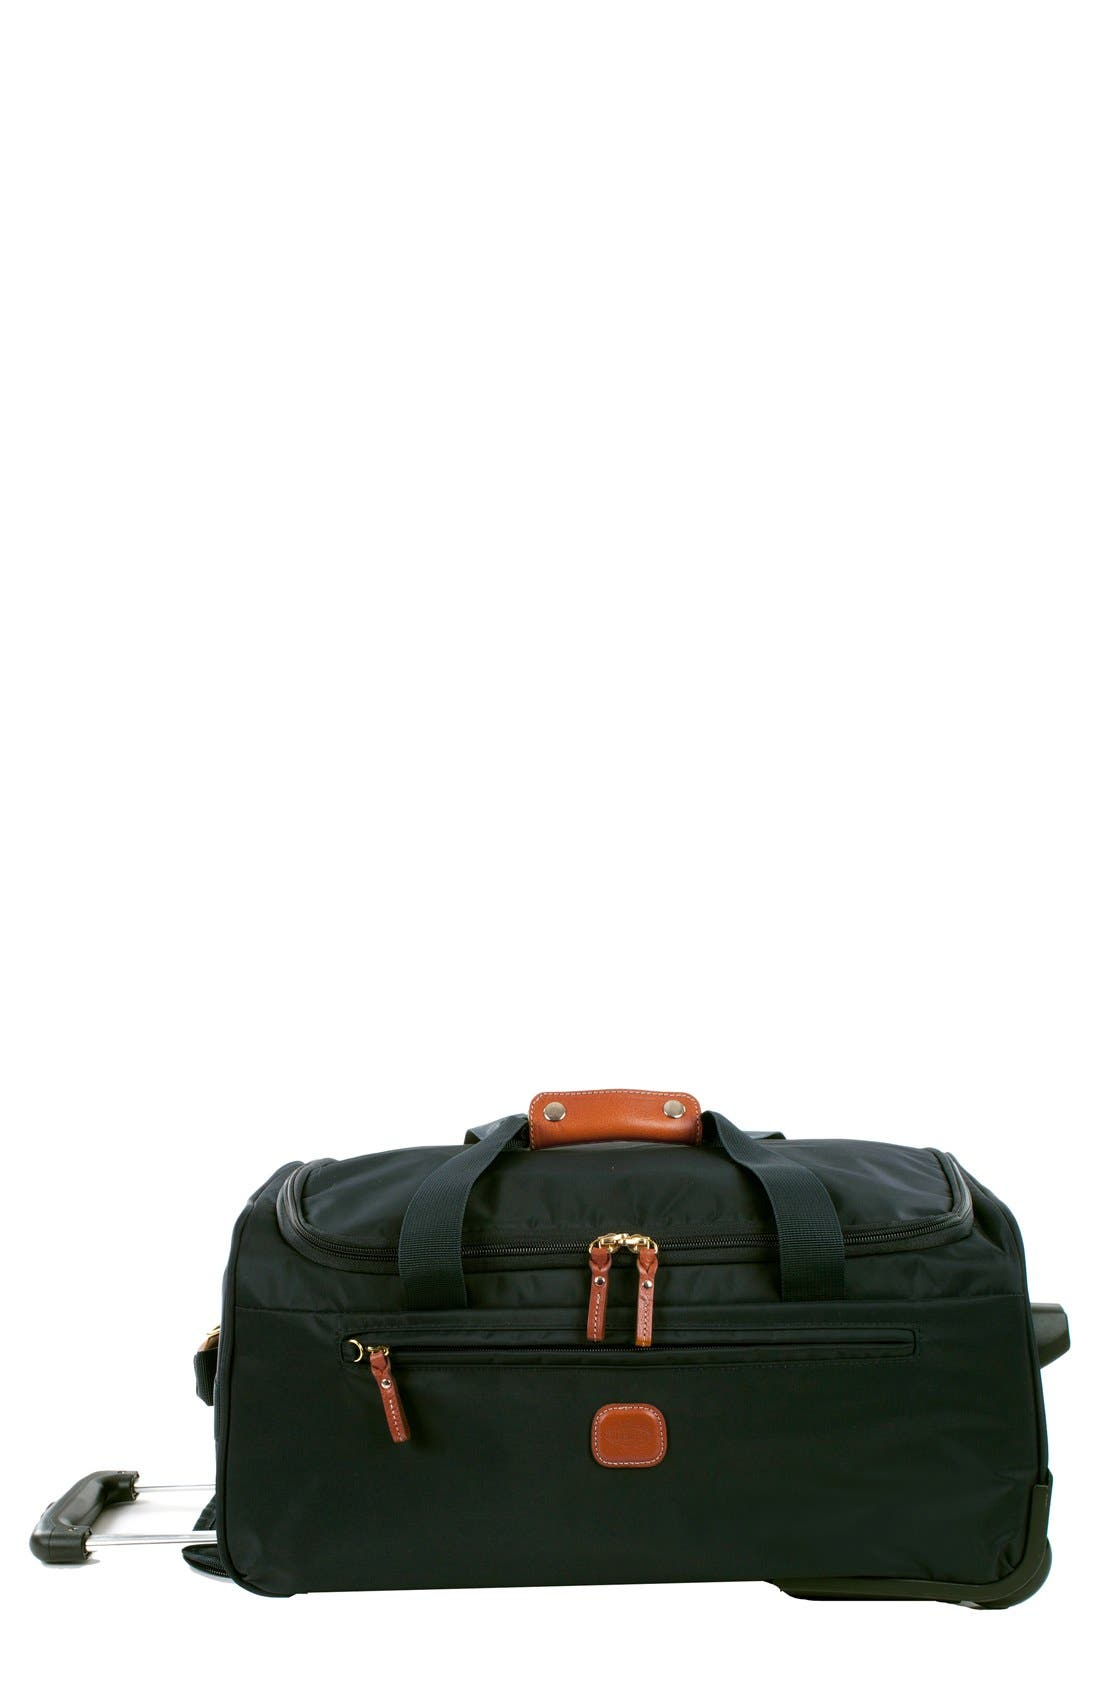 Alternate Image 1 Selected - Bric's X-Bag 21-Inch Rolling Carry-On Duffel Bag